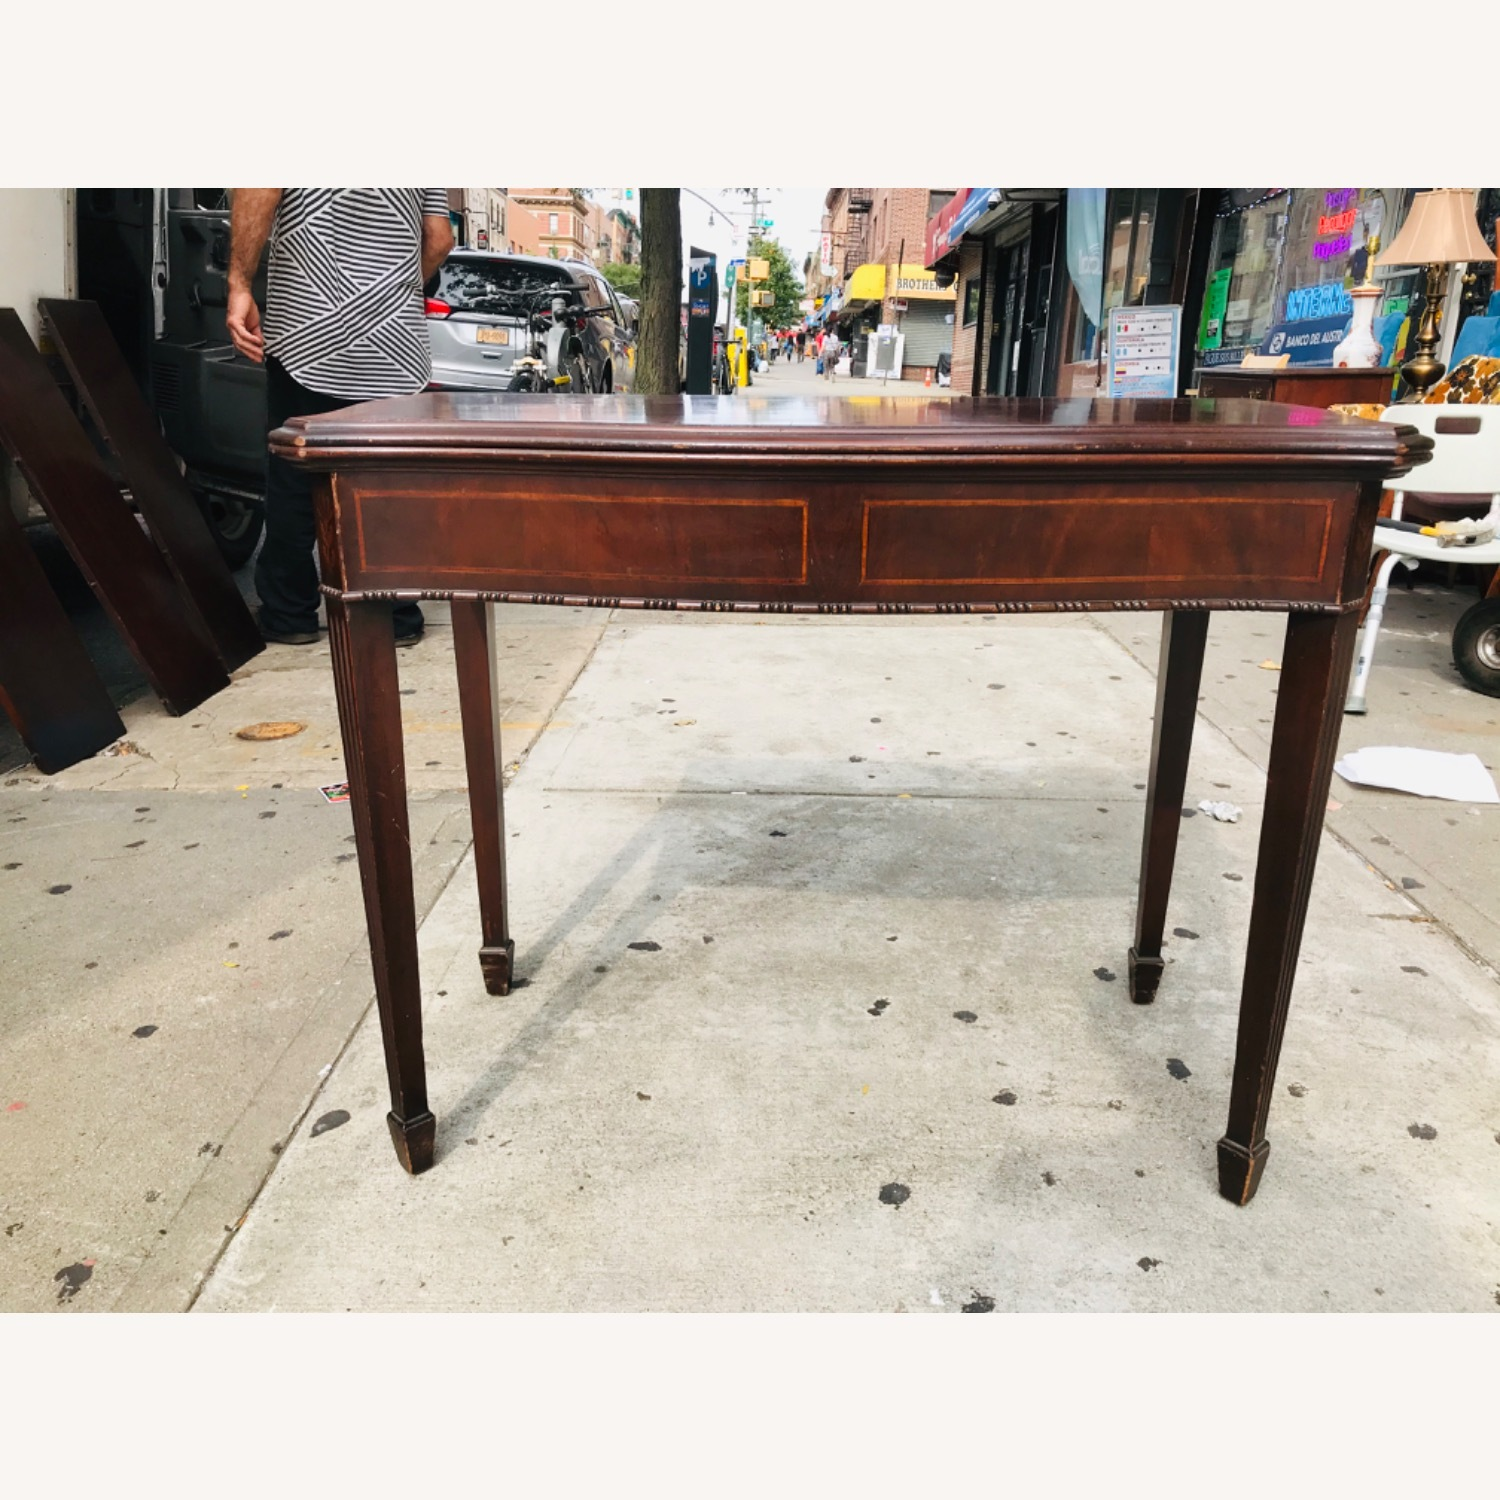 Antique 1920s Mahogany Table w/3 Leaves  - image-4